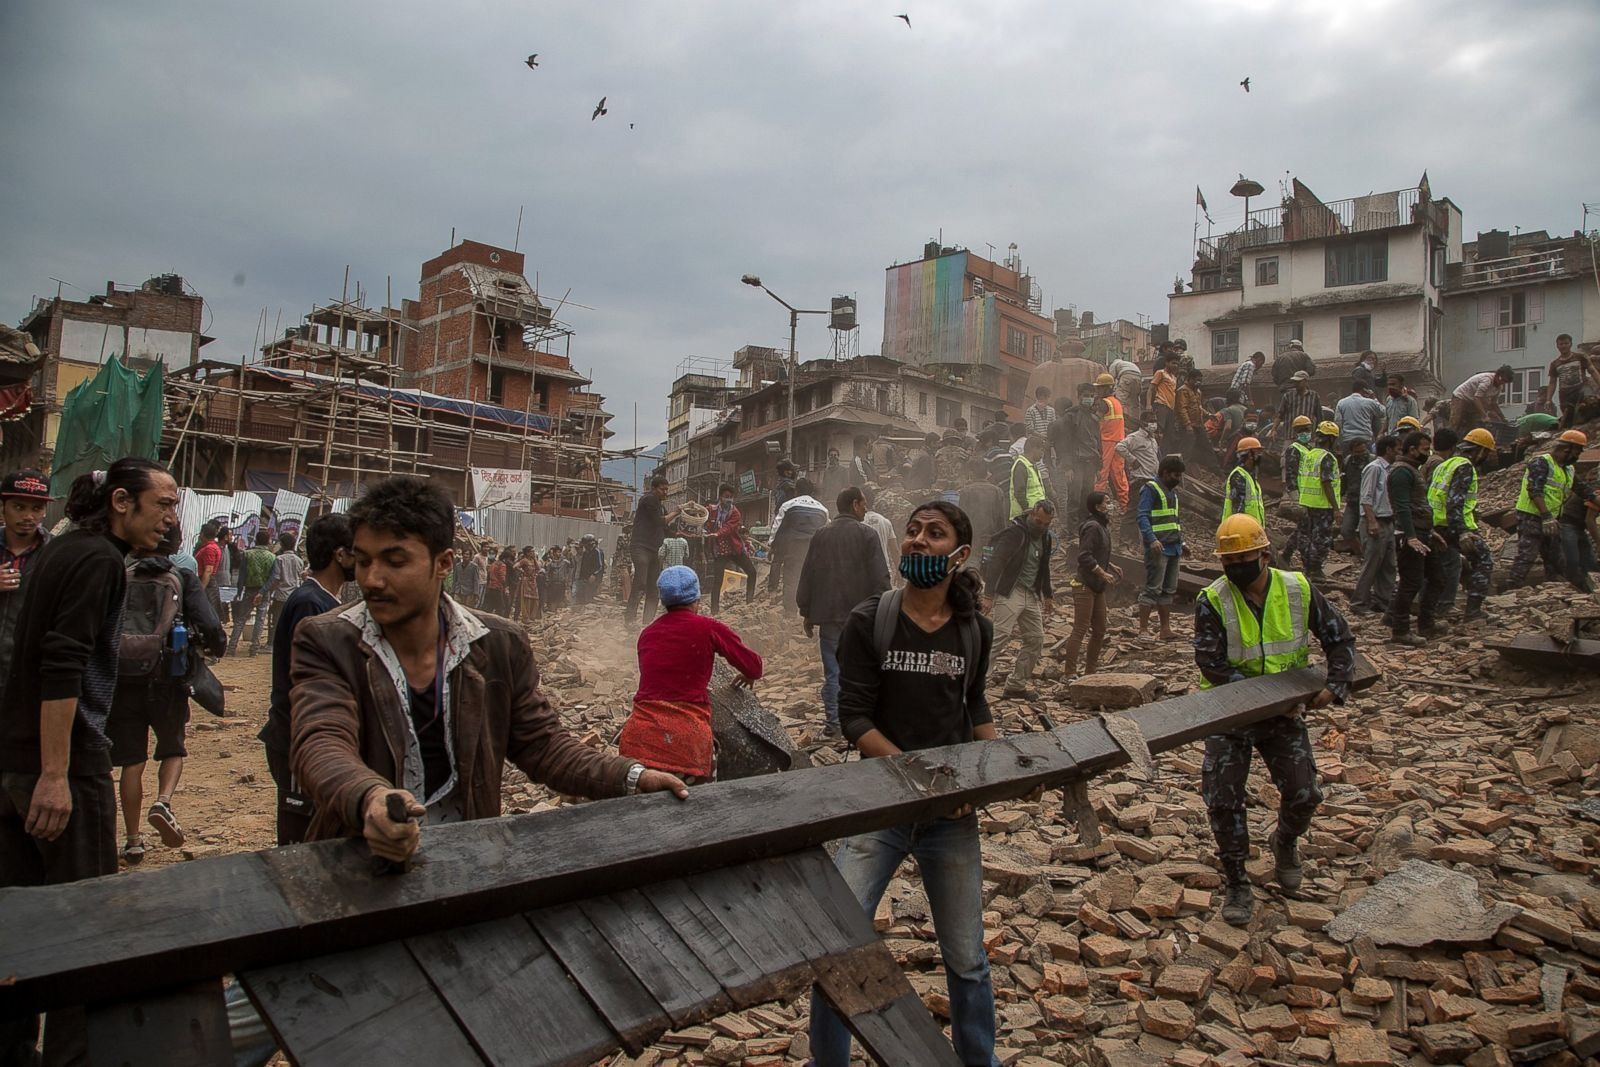 People Helping to Clear the rubble